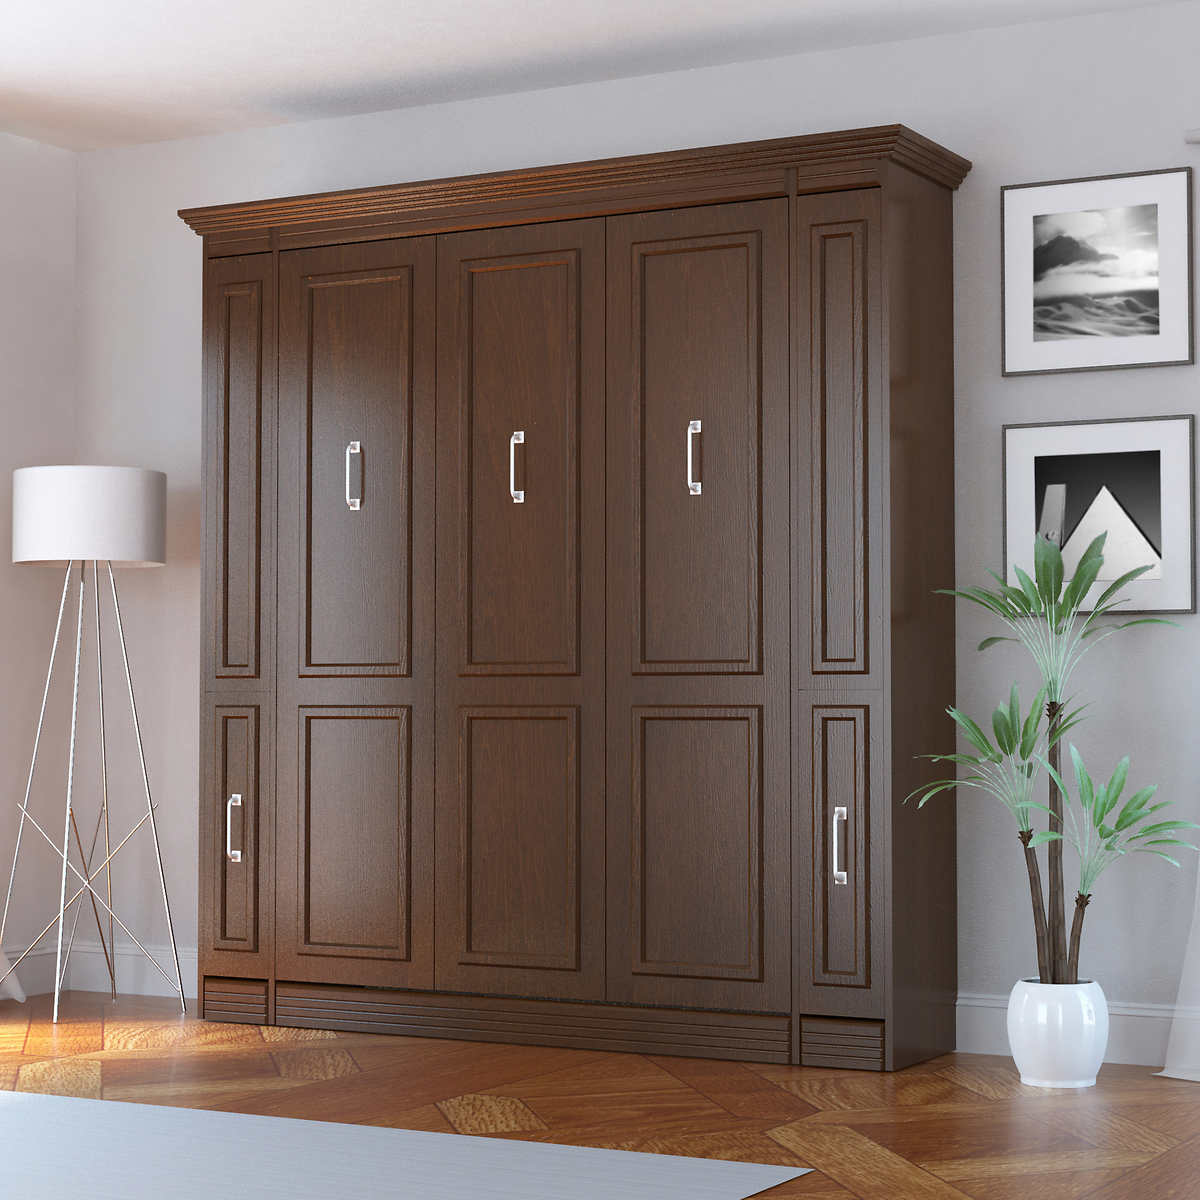 Pictures of murphy beds - Bed Room Porter Queen Portrait Wall Bed With Internal Storage In Walnut